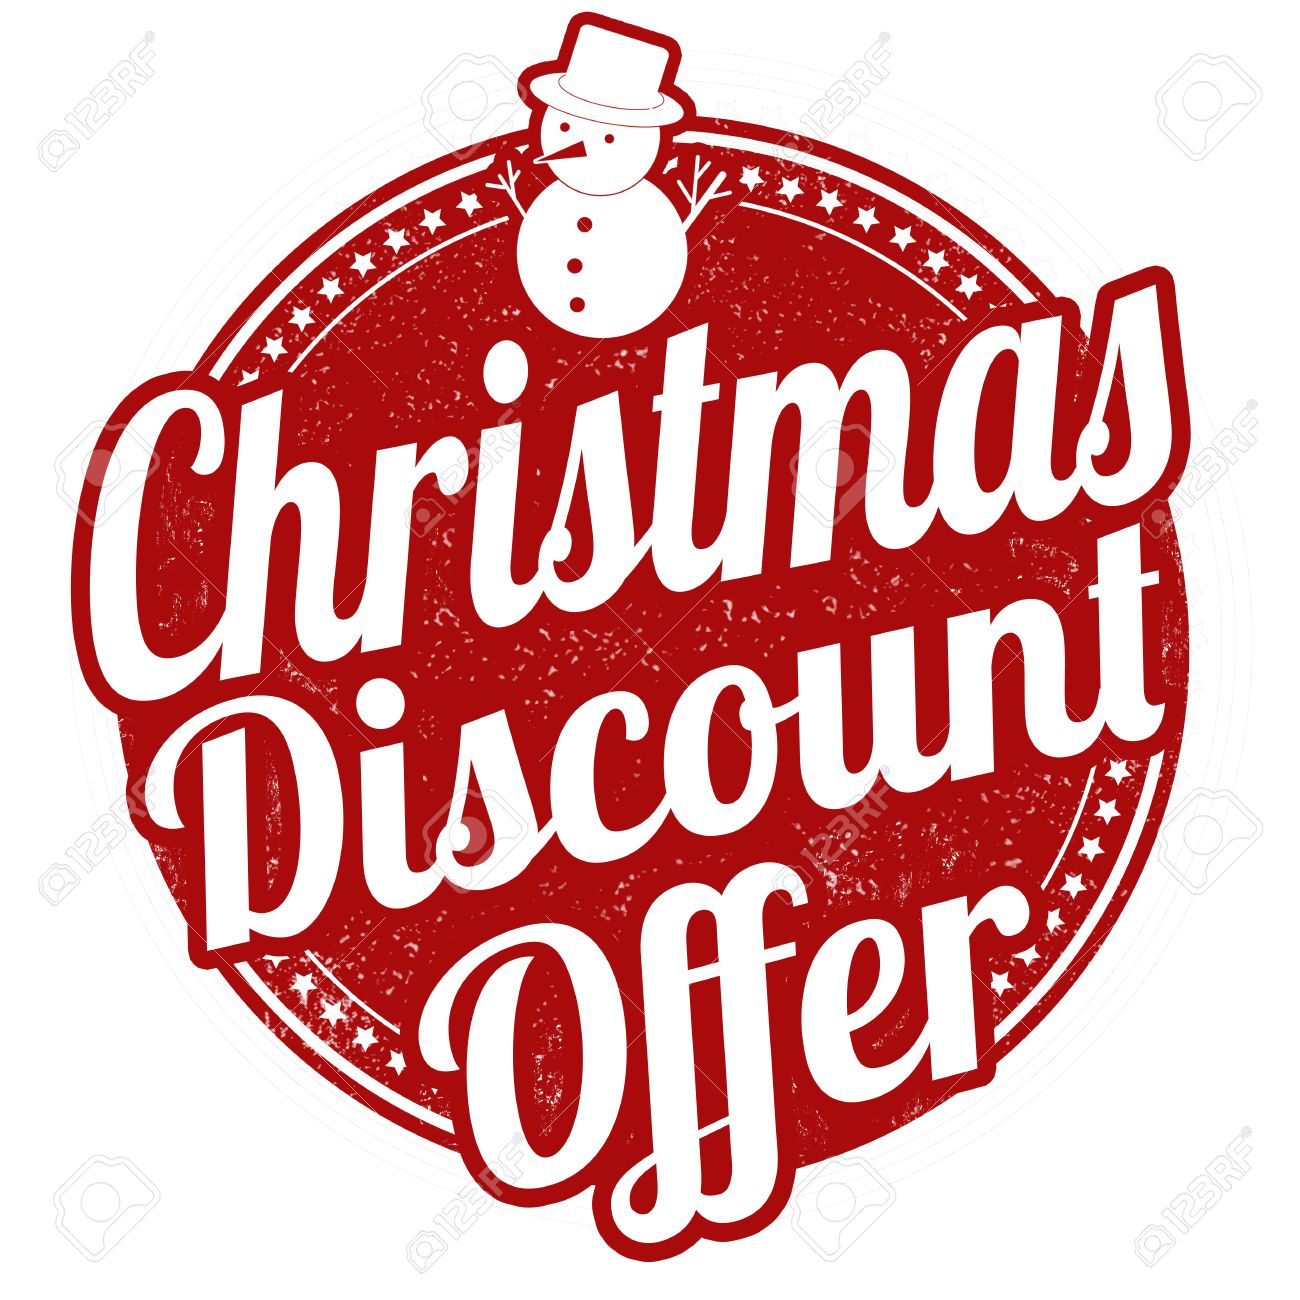 christmas discount offer grunge rubber stamp on white background